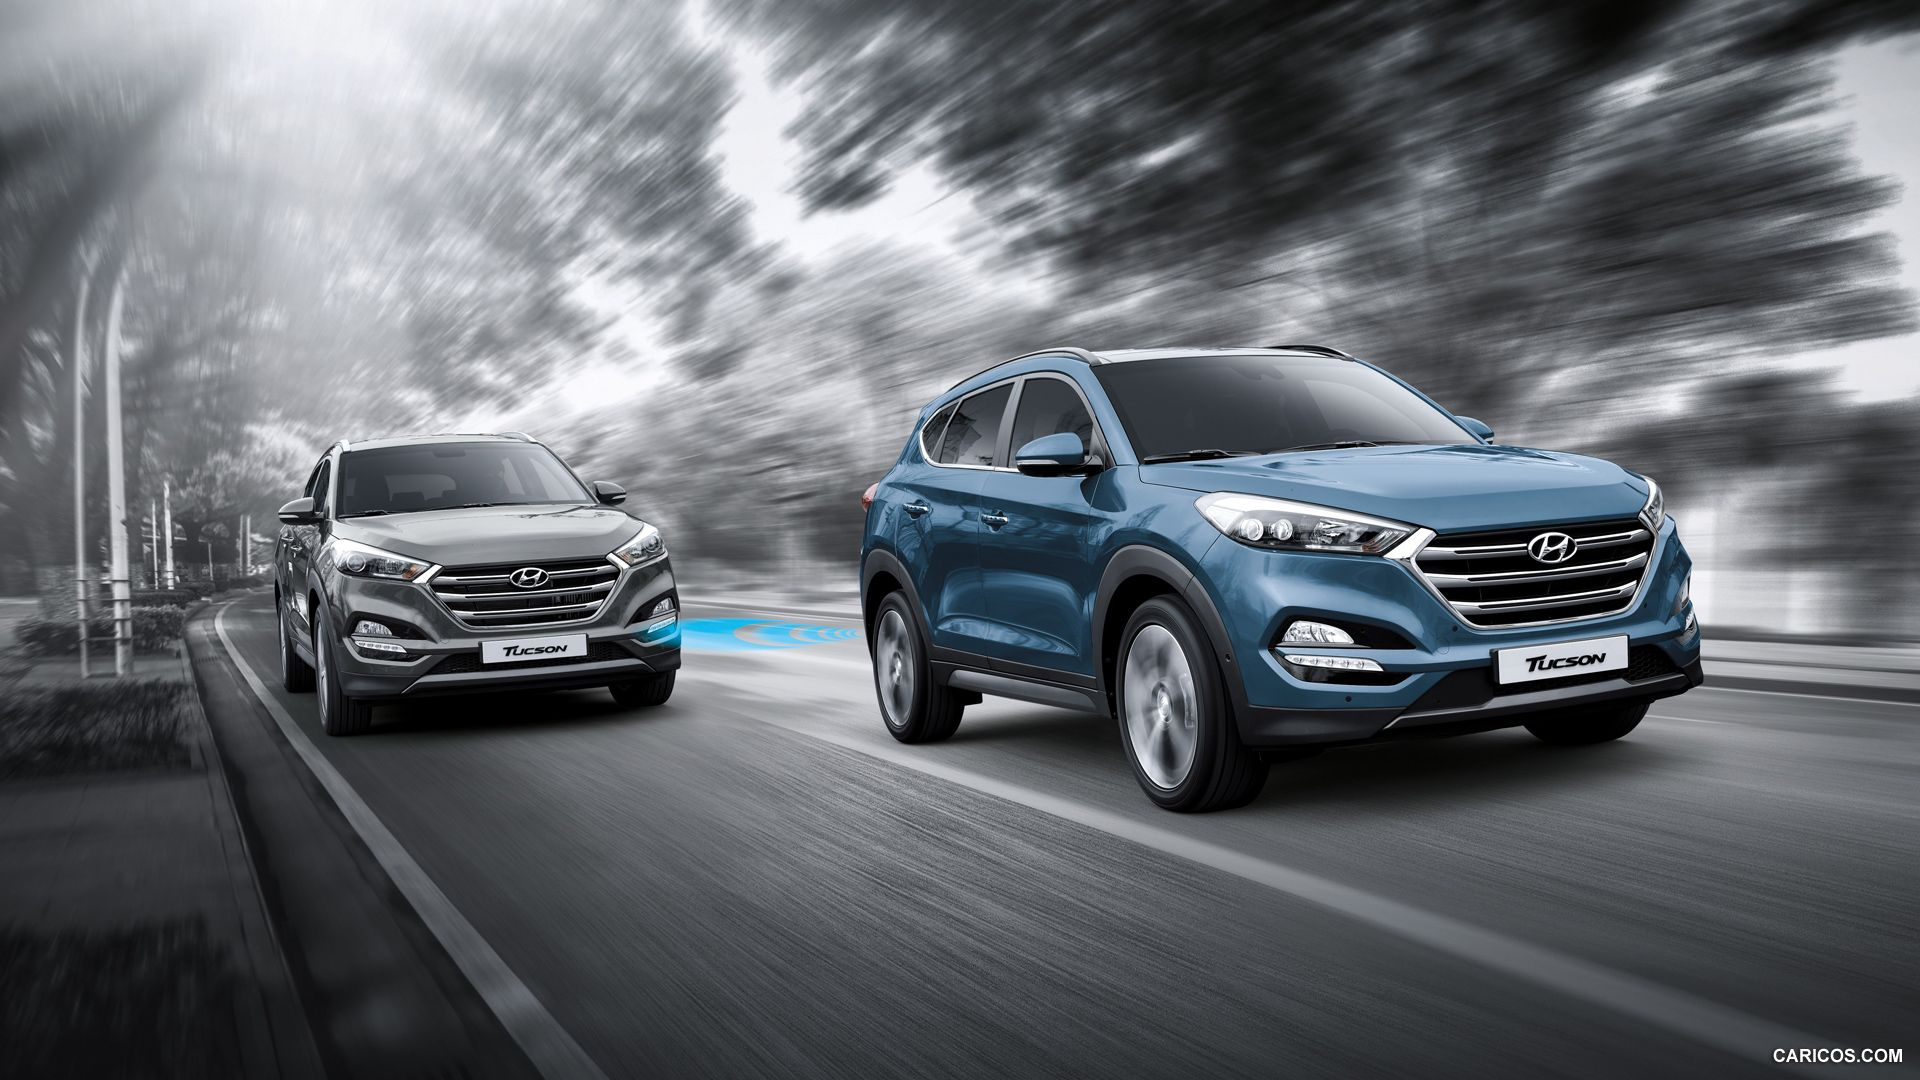 Hyundai Wallpaper For Mac 3dc Hyundai Tucson Tucson Suv